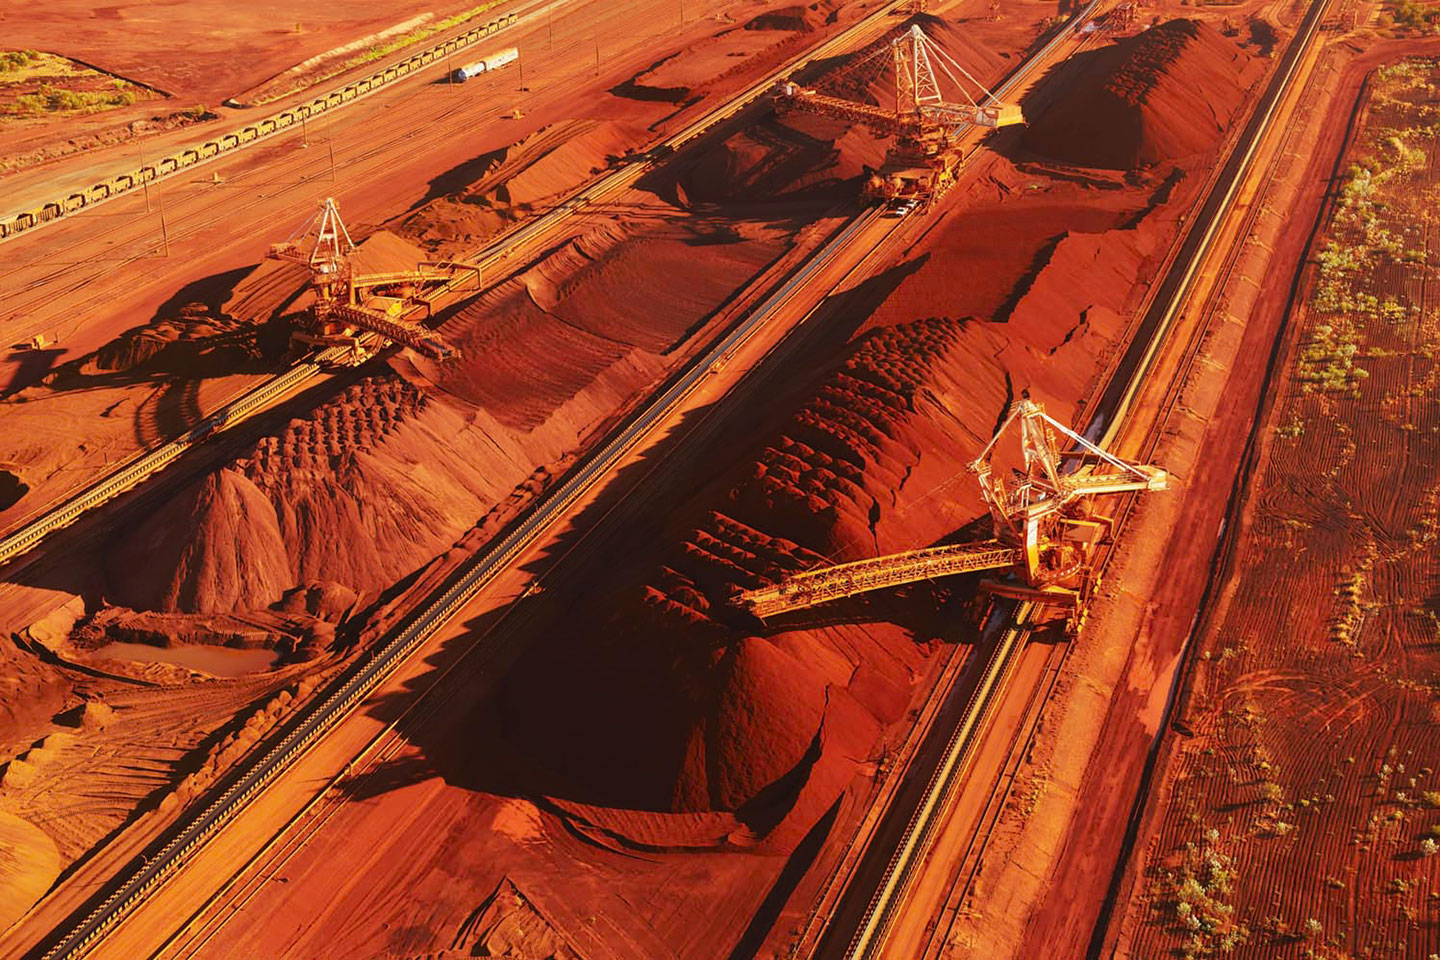 BHP Billiton's copper and energy coal production increases in H1